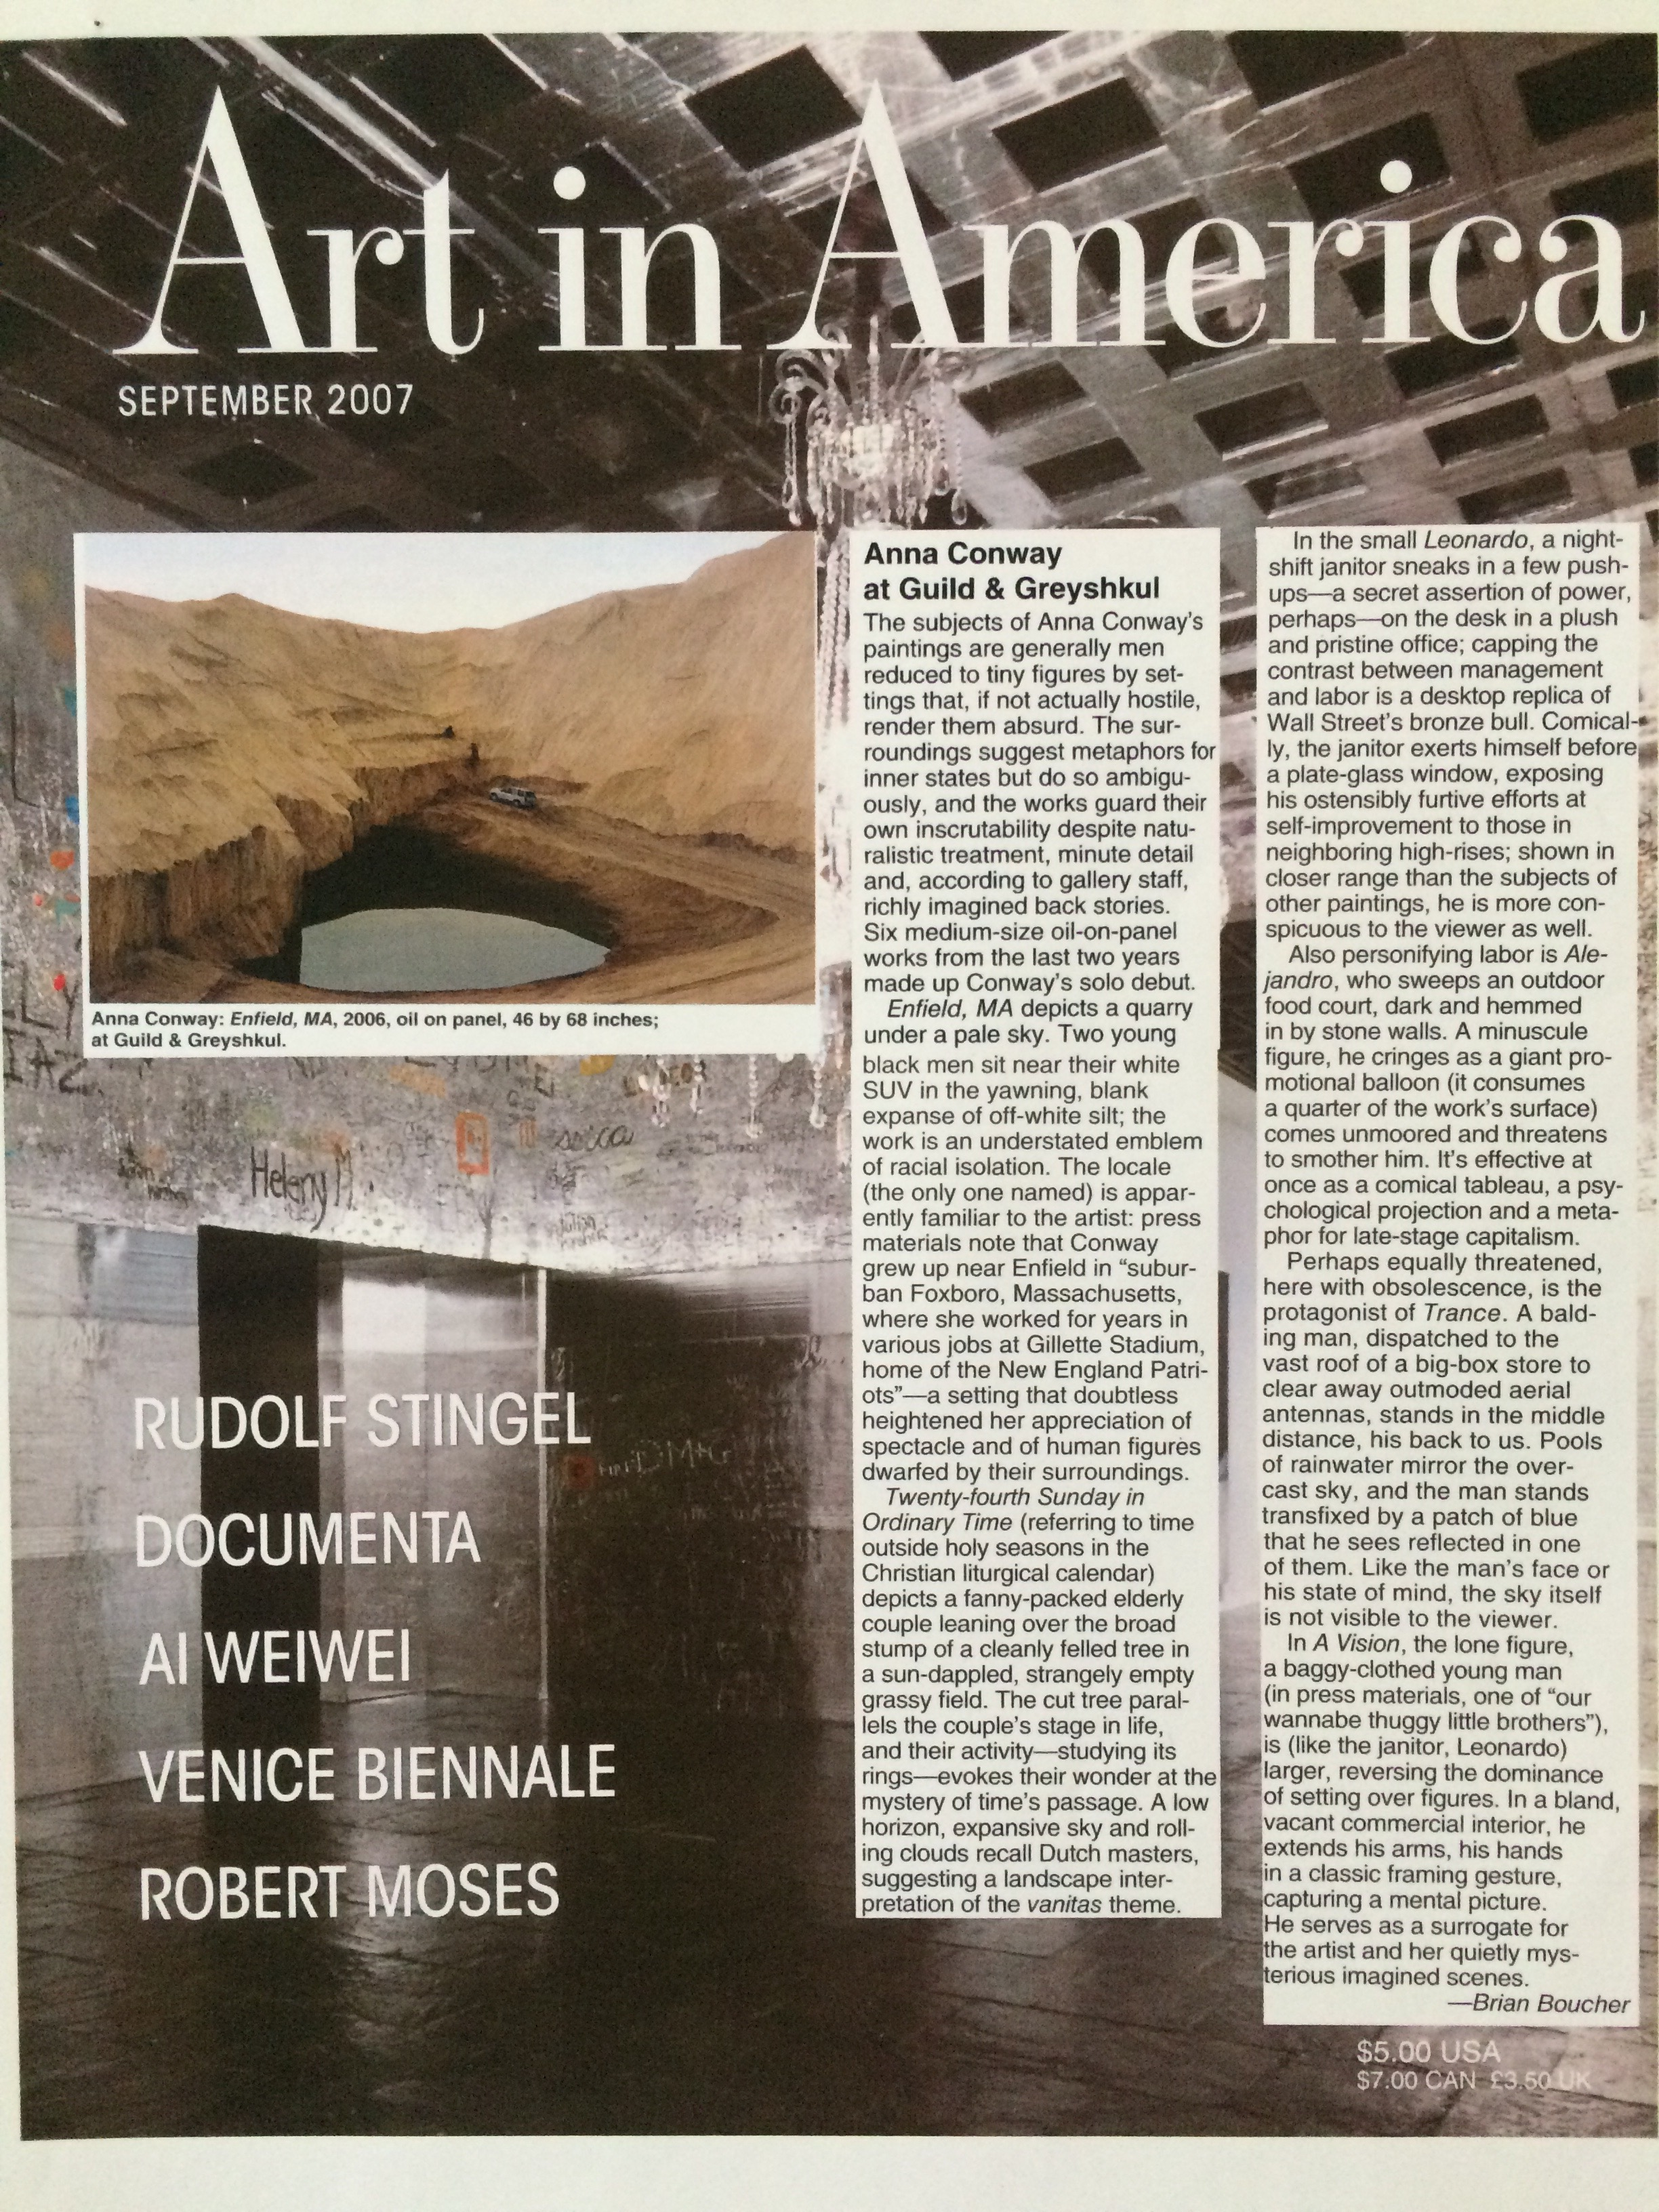 Art in America, Sept. 2007